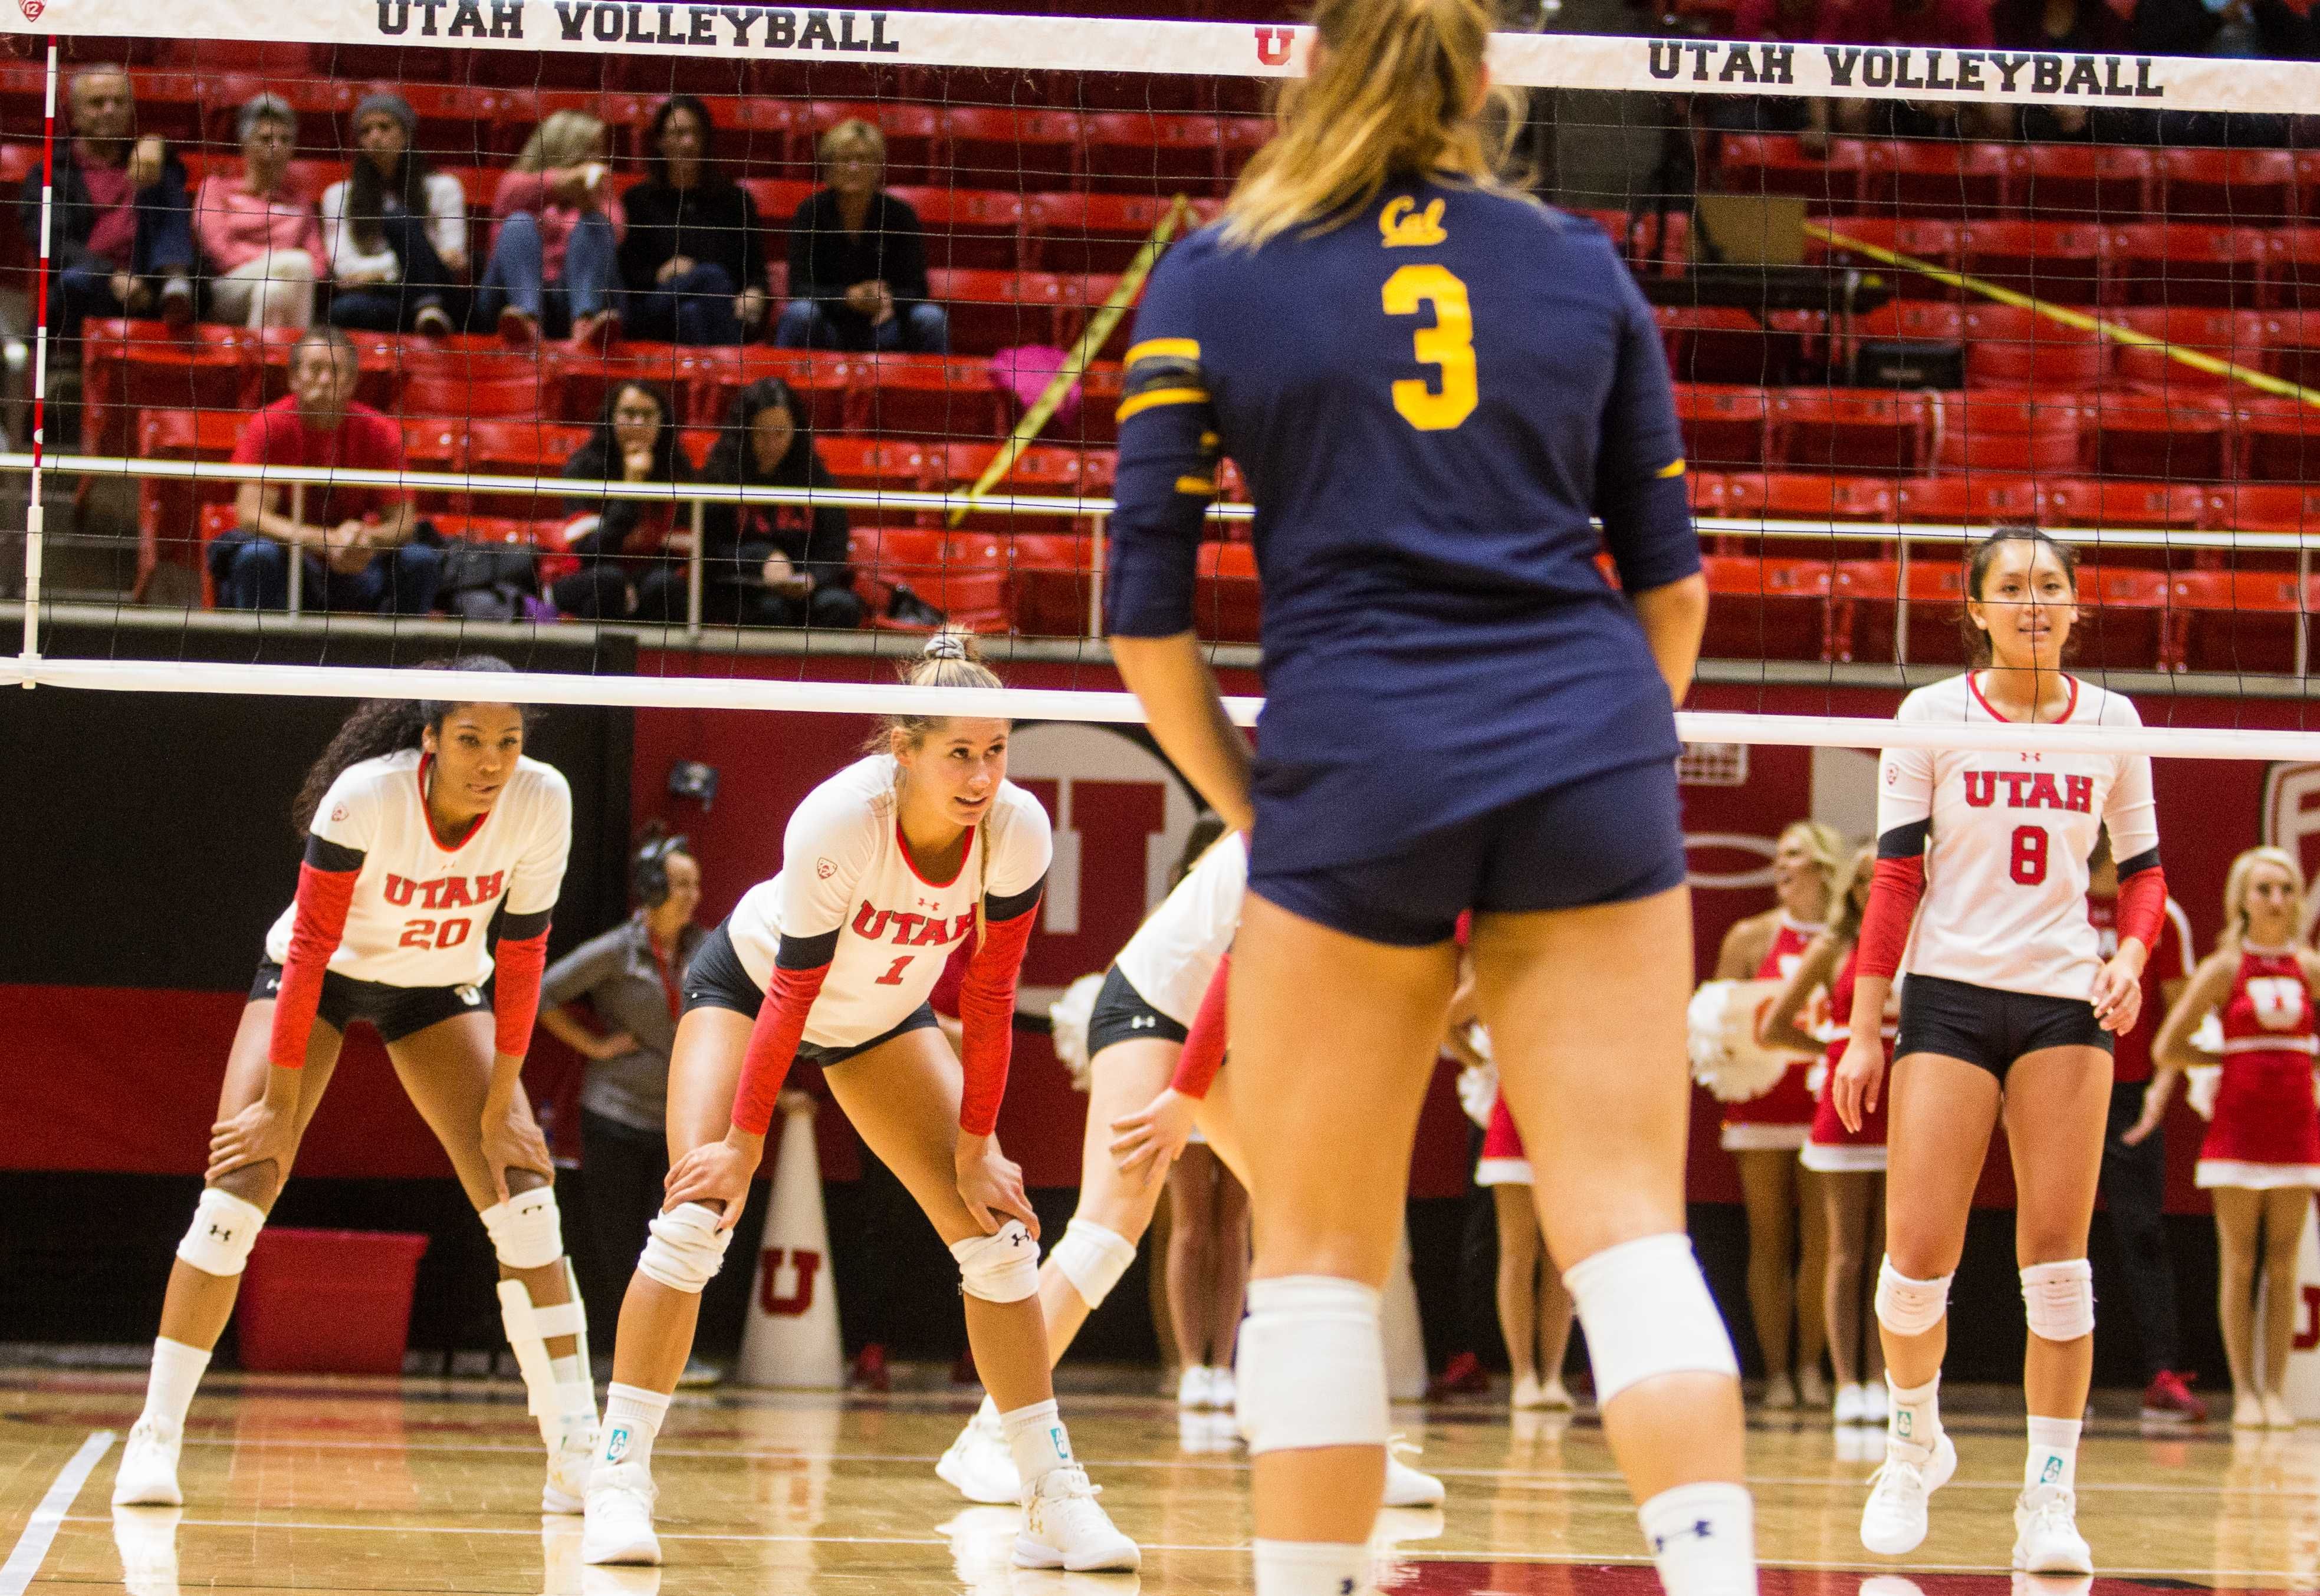 University of Utah  Volleyball girls take on California Golden Bears for the win 3-0 . University of Utah takes the win in Salt Lake City, UT on Sunday,Sept.24, 2017  (Photo by Jose Remes/ Daily Utah Chronicle)